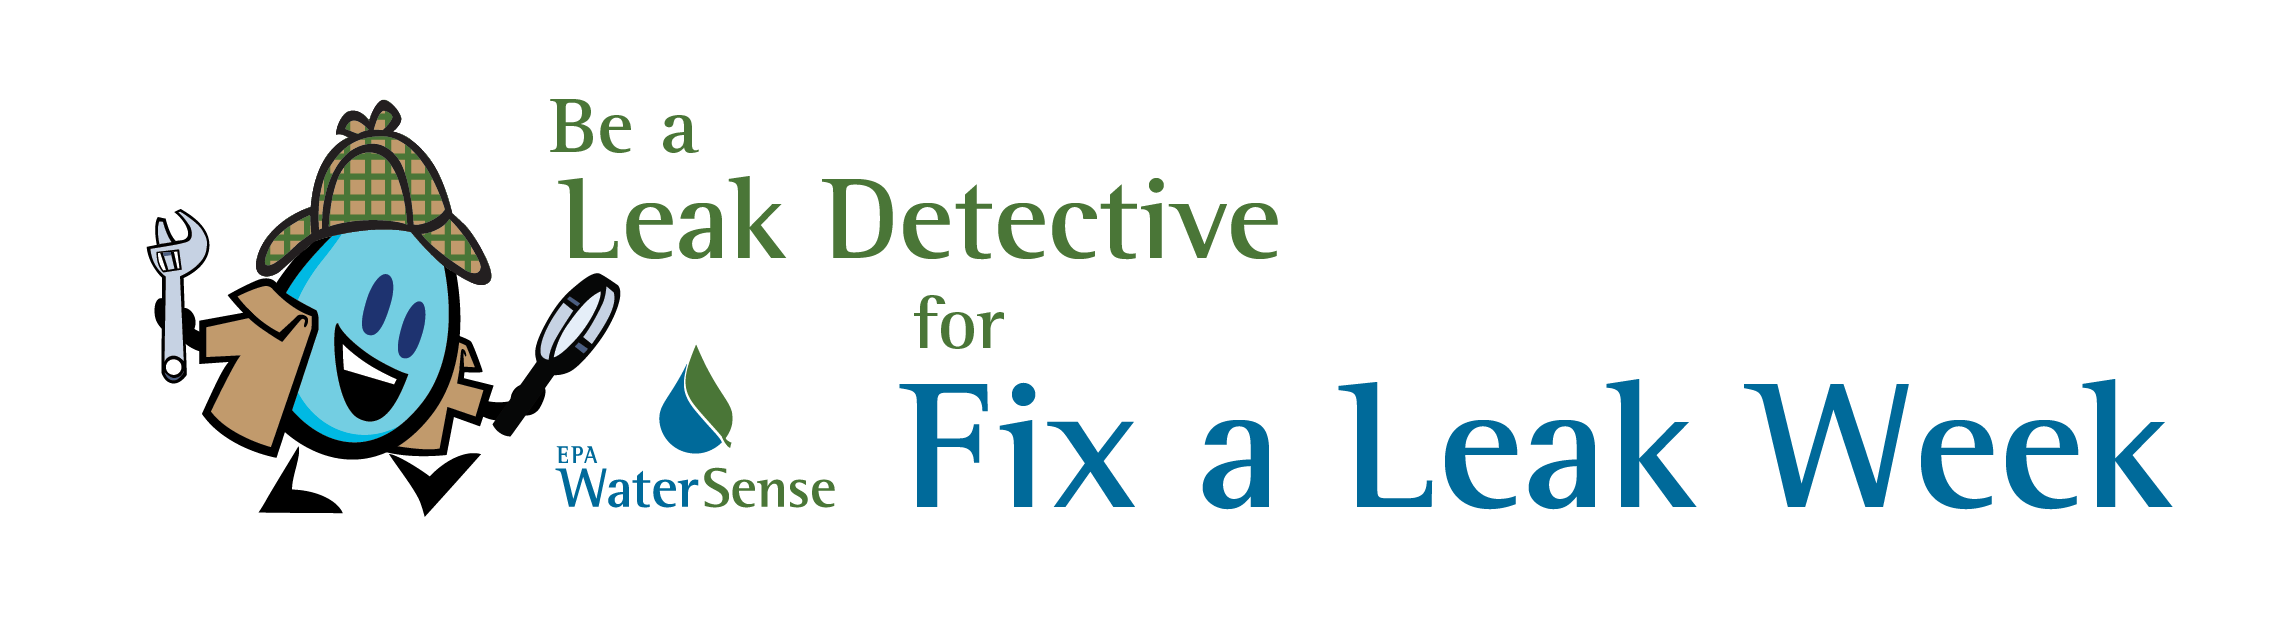 WaterSense Fix A Leak Week Leak Detective